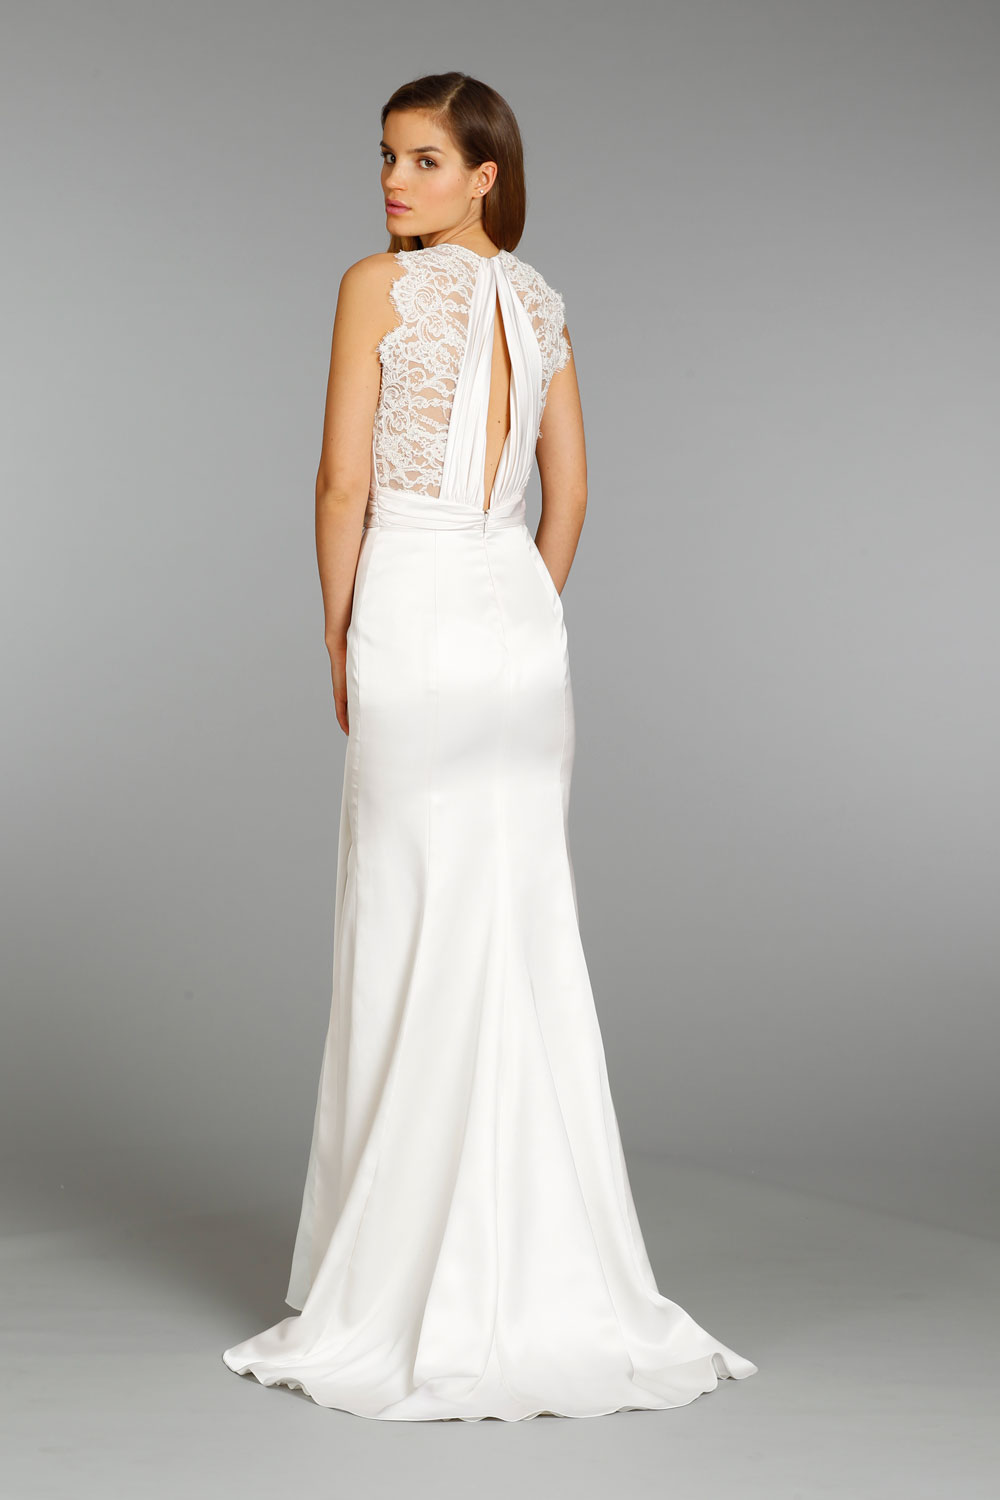 Wedding dress by jim hjelm 2013 bridal lace statement back for Jim hjelm wedding dresses